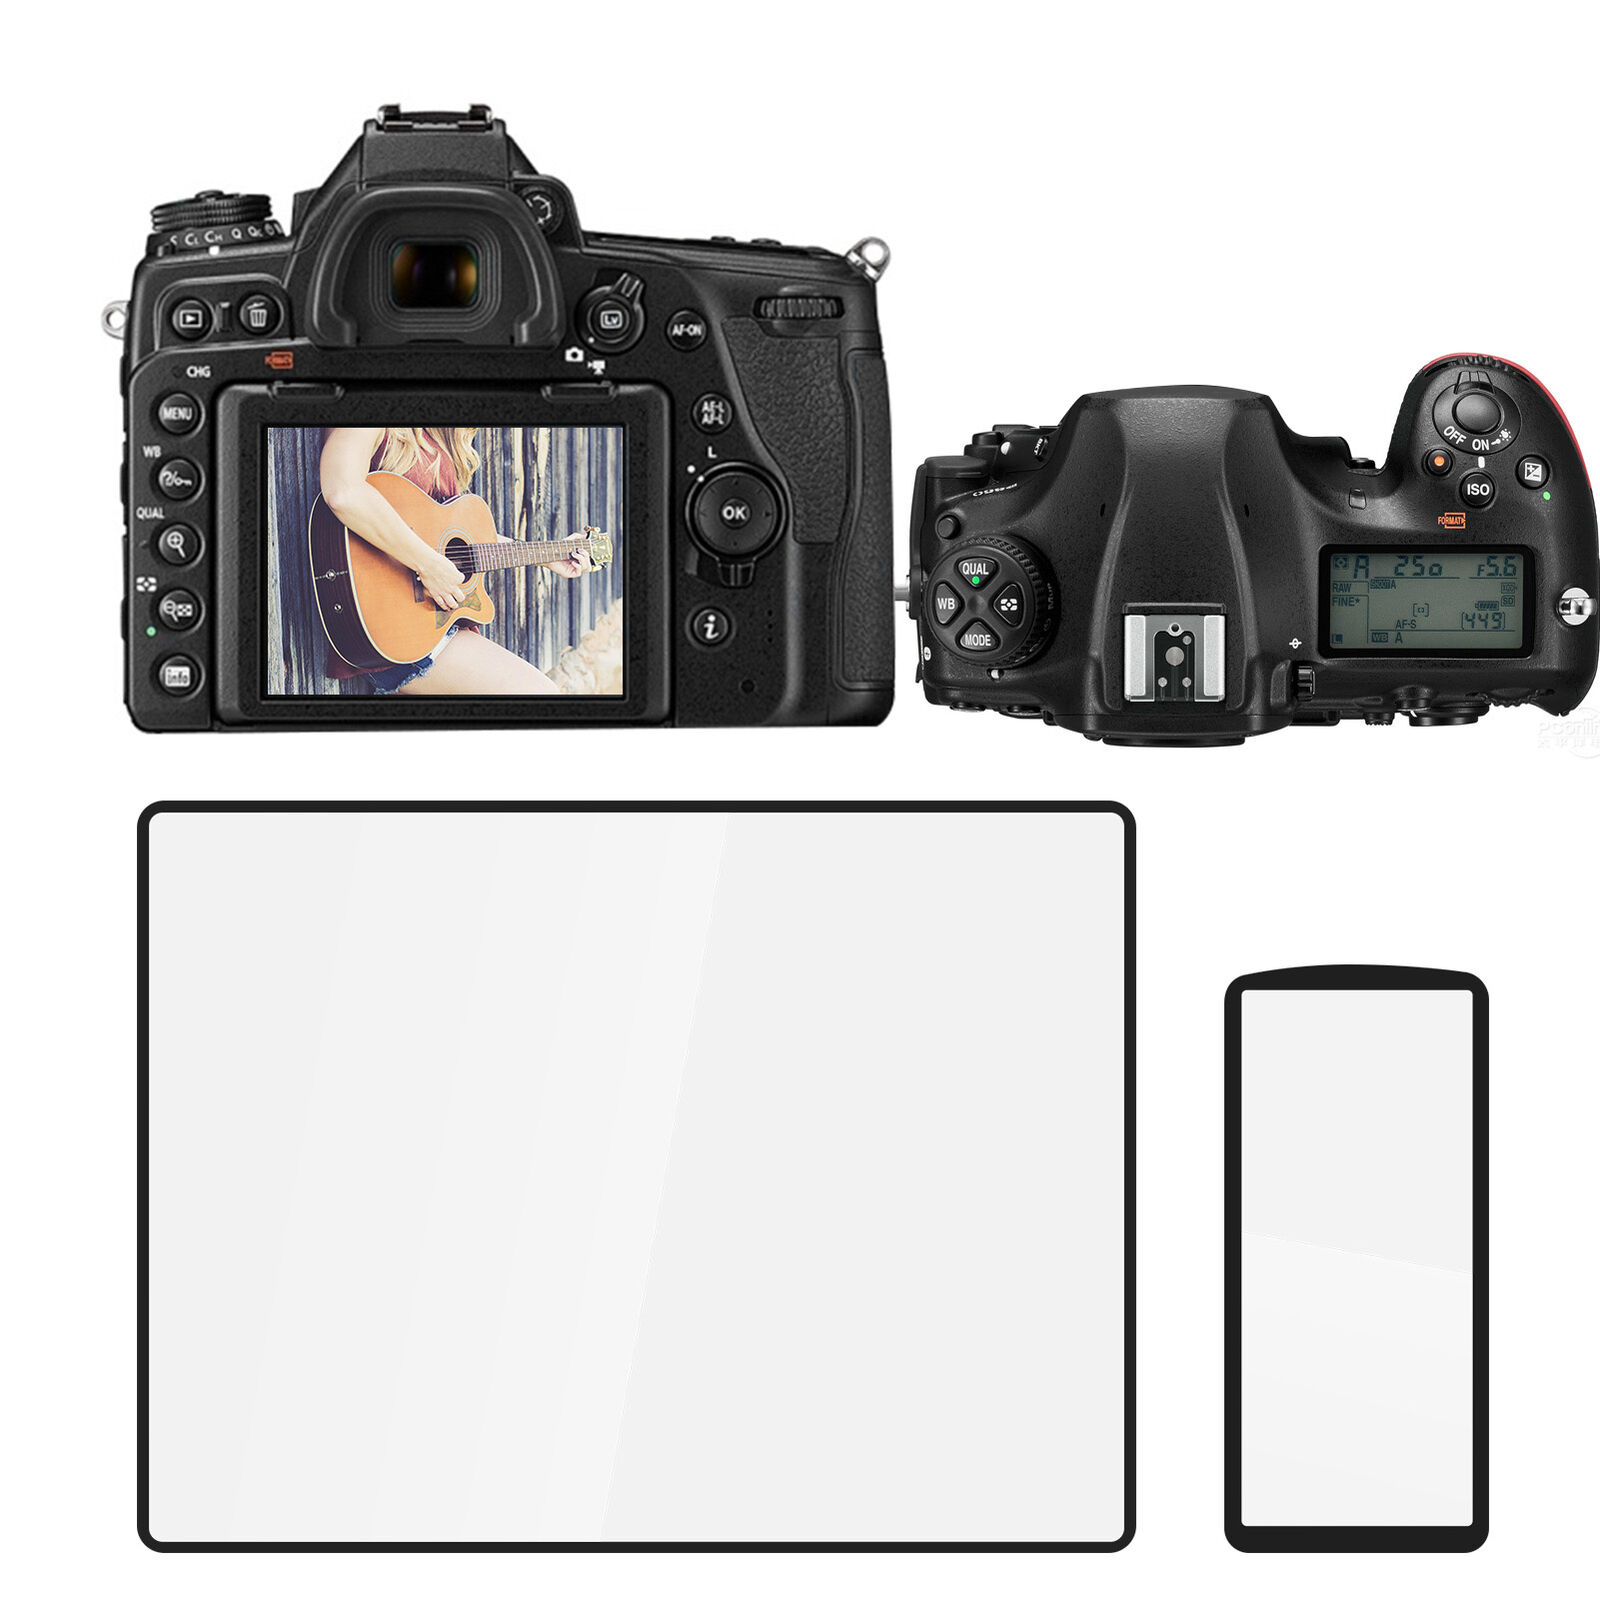 Optical Glass SLR Tempered Glass Screen Protector for Nikon D750/D780 Camera